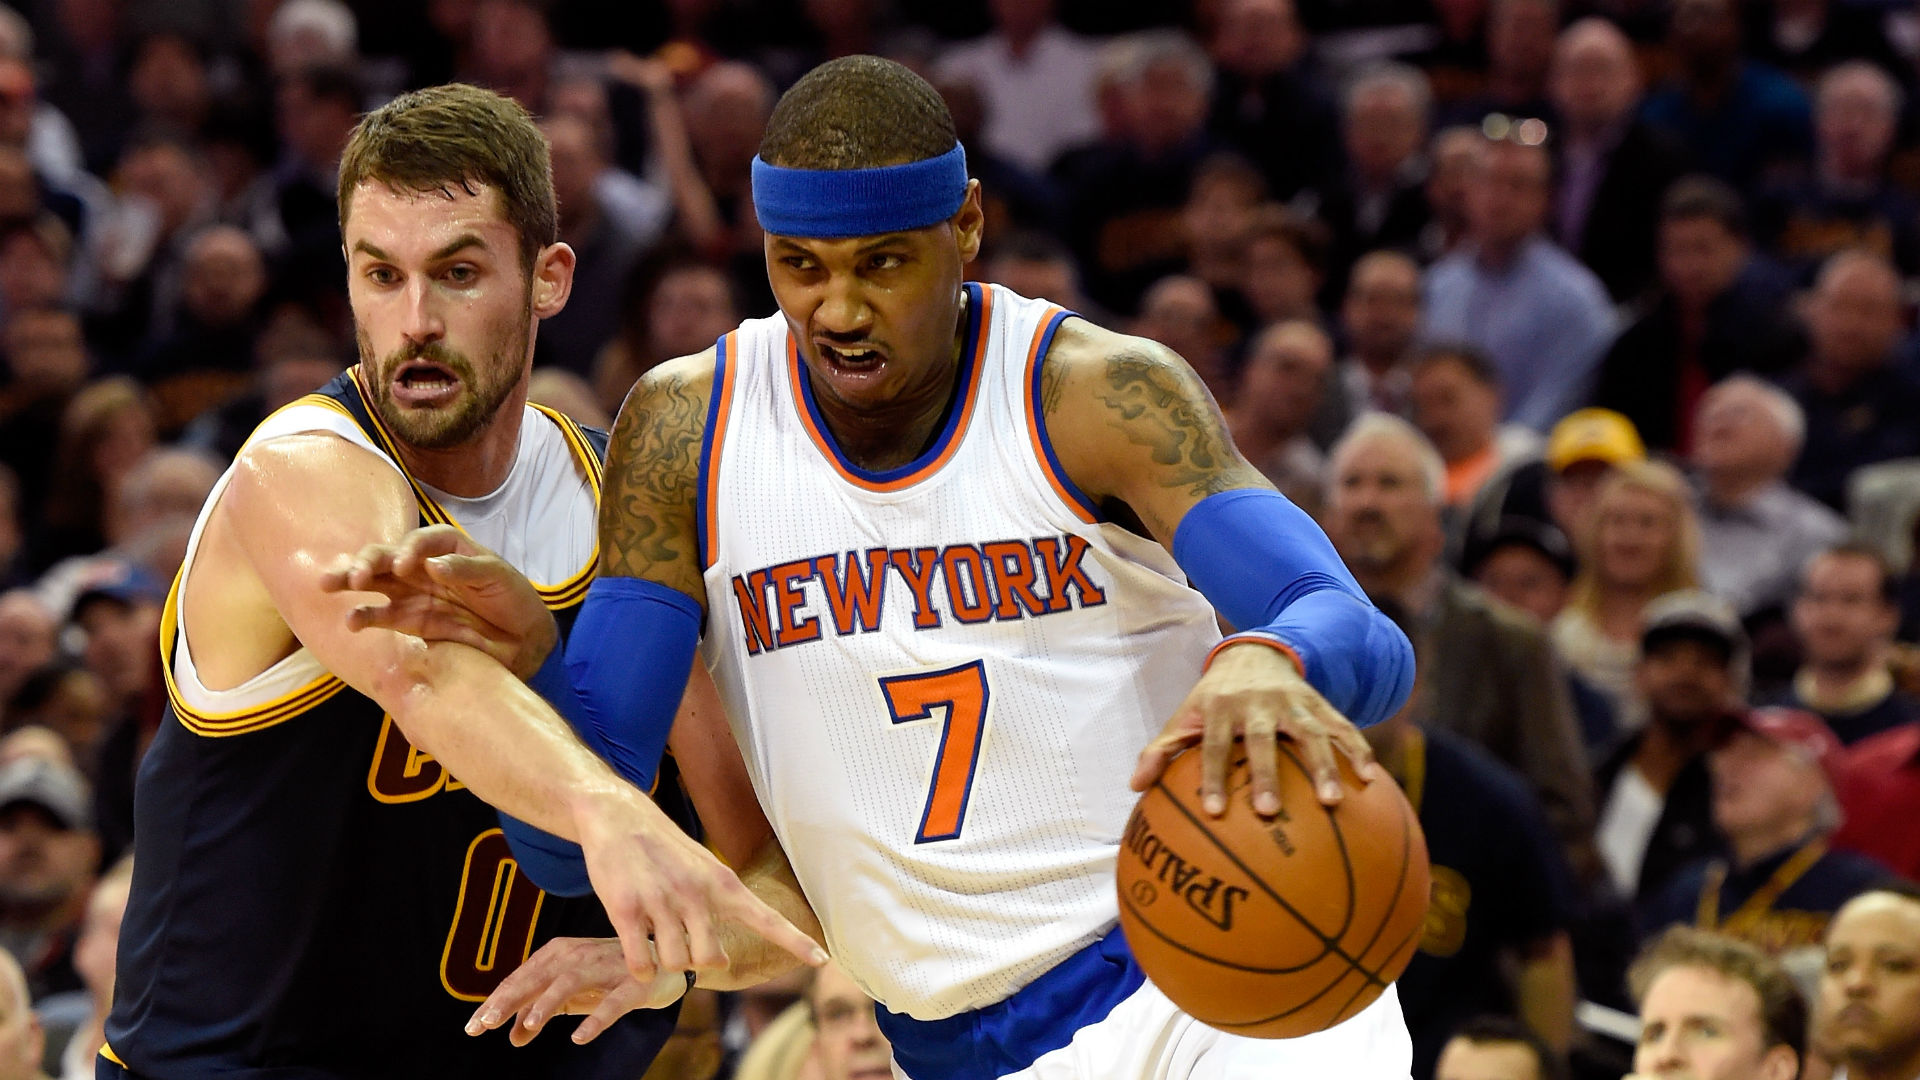 Carmelo Anthony On The Trade Block? Kristaps Porzingis Defends Teammate